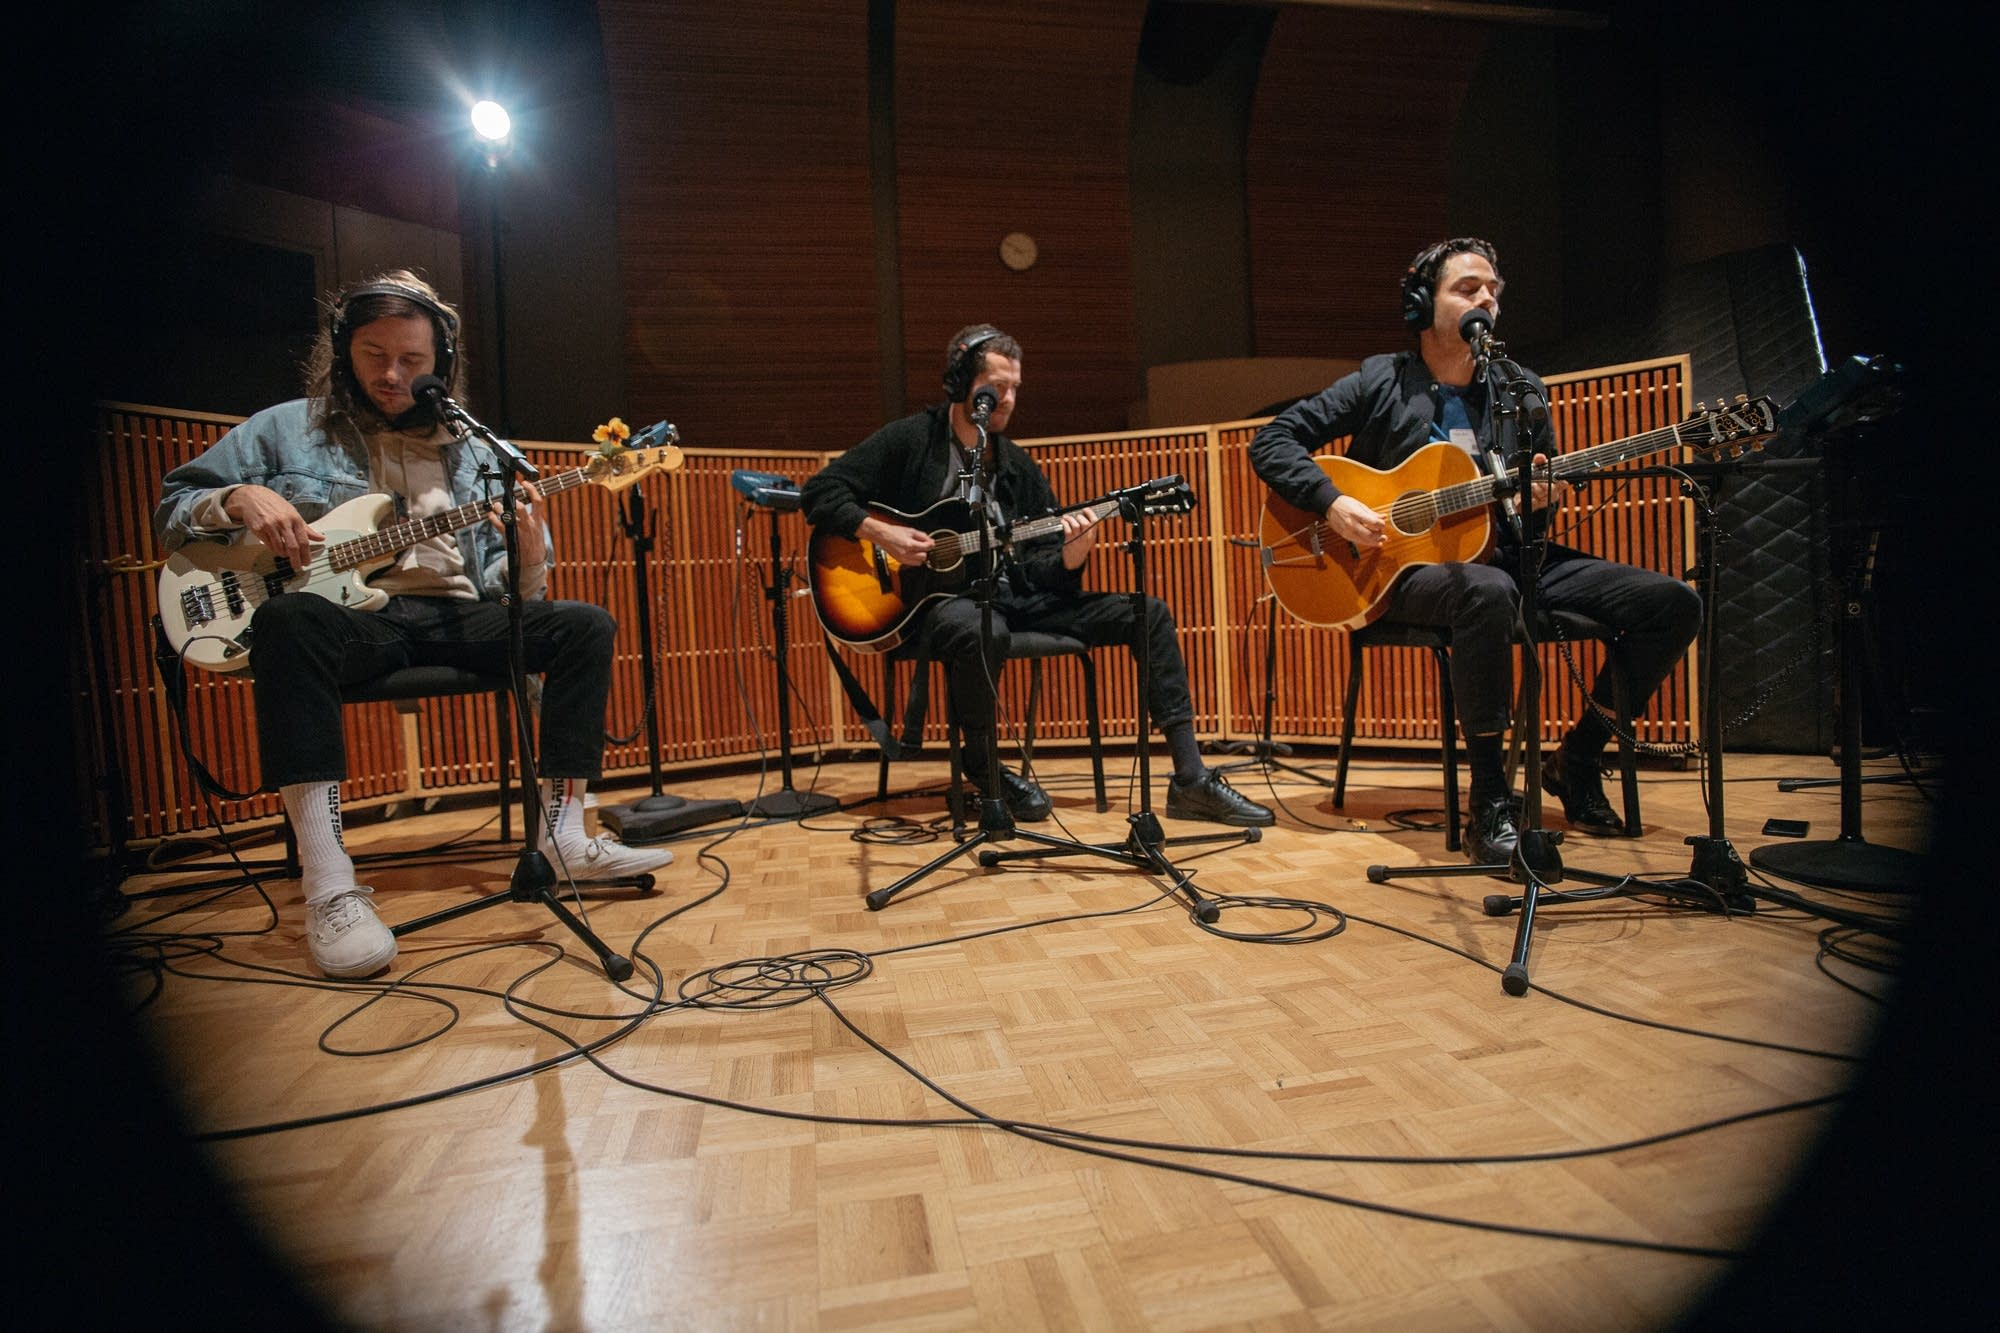 Local Natives perform in The Current studio